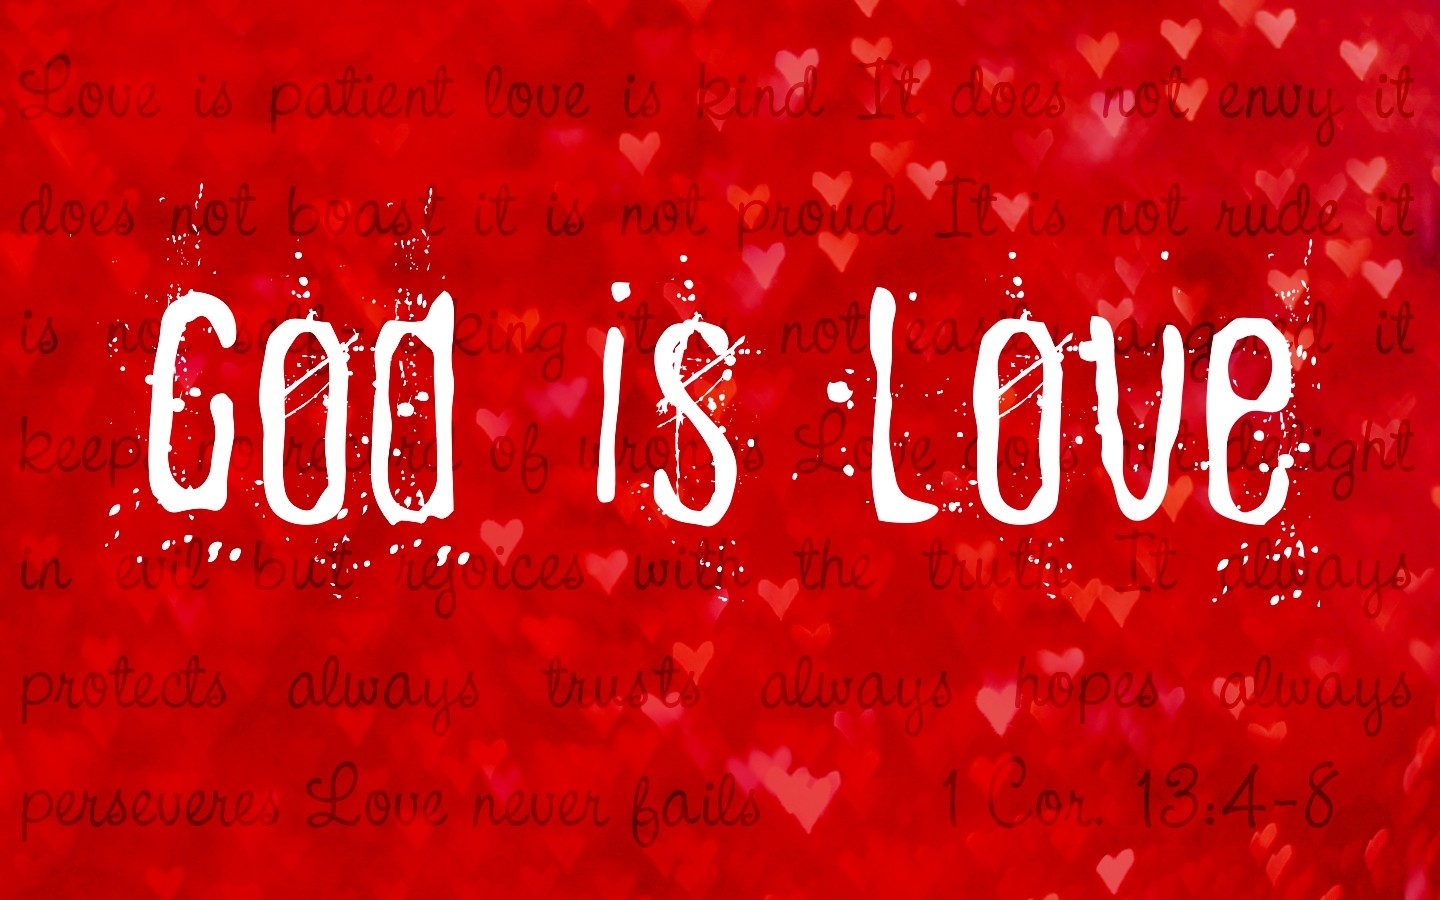 God Is Love wallpaper Background HD for Pc Mobile Phone Download 1440x900